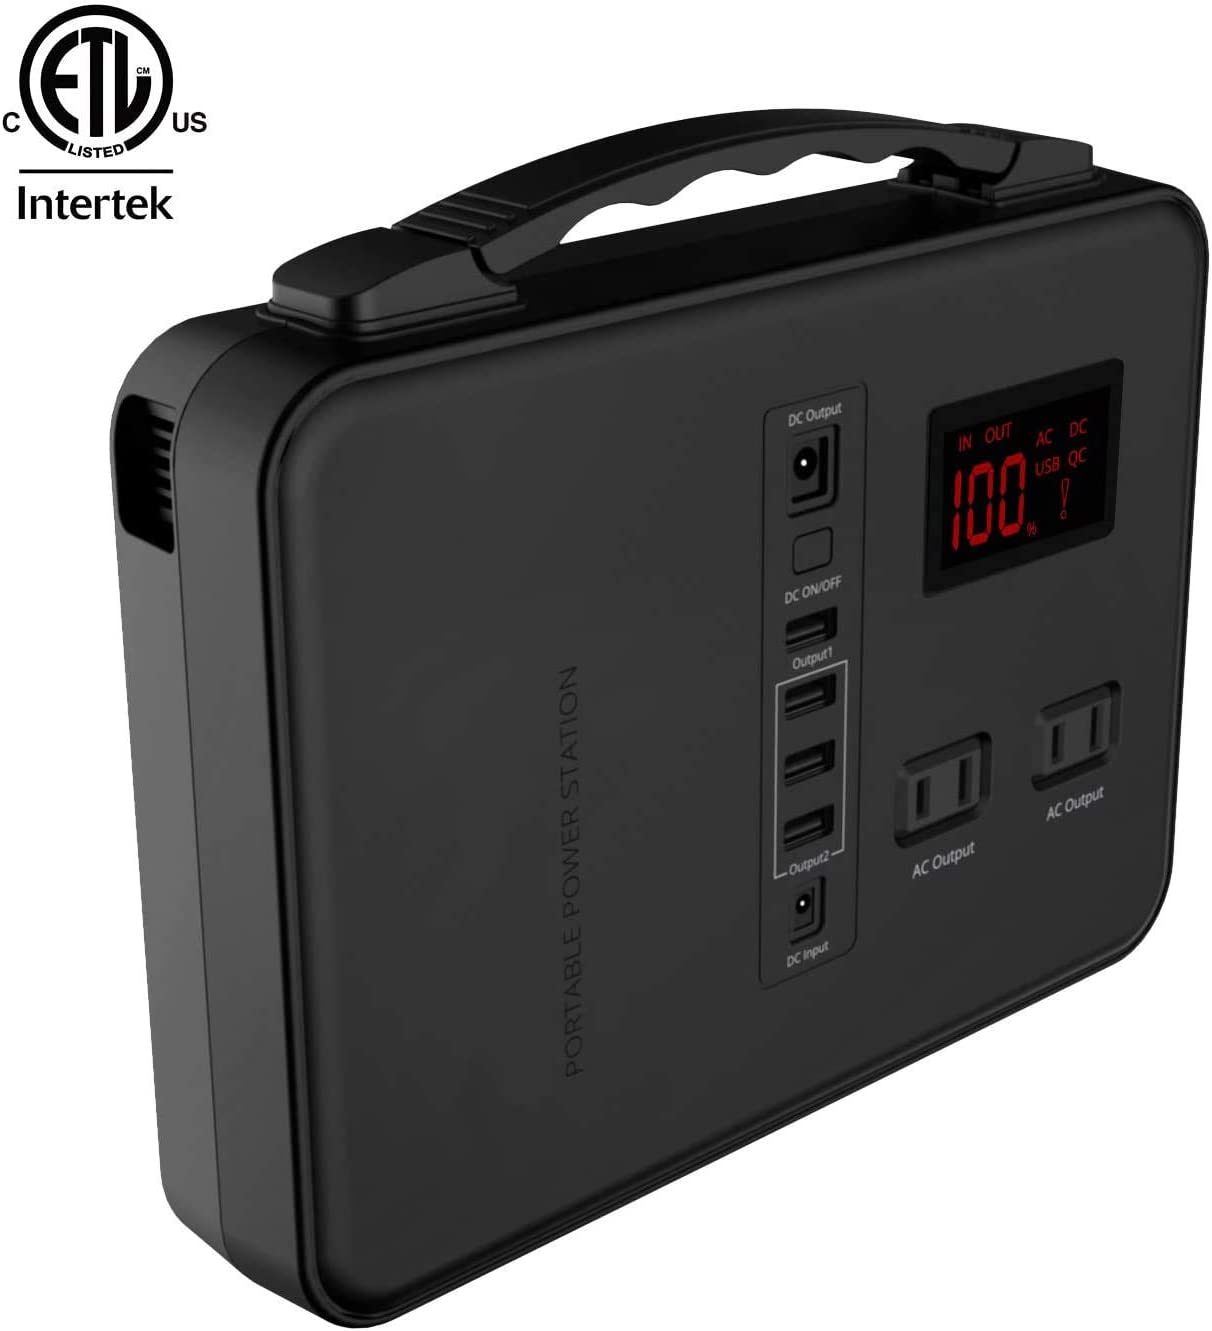 12V DC Output Rechargeable Emergency Backup Lithium Battery with 110V//200W AC Outlet for Home Travel Camping Outdoors USB Ports 150Wh LED Flashlight Alpha Digital Power Station